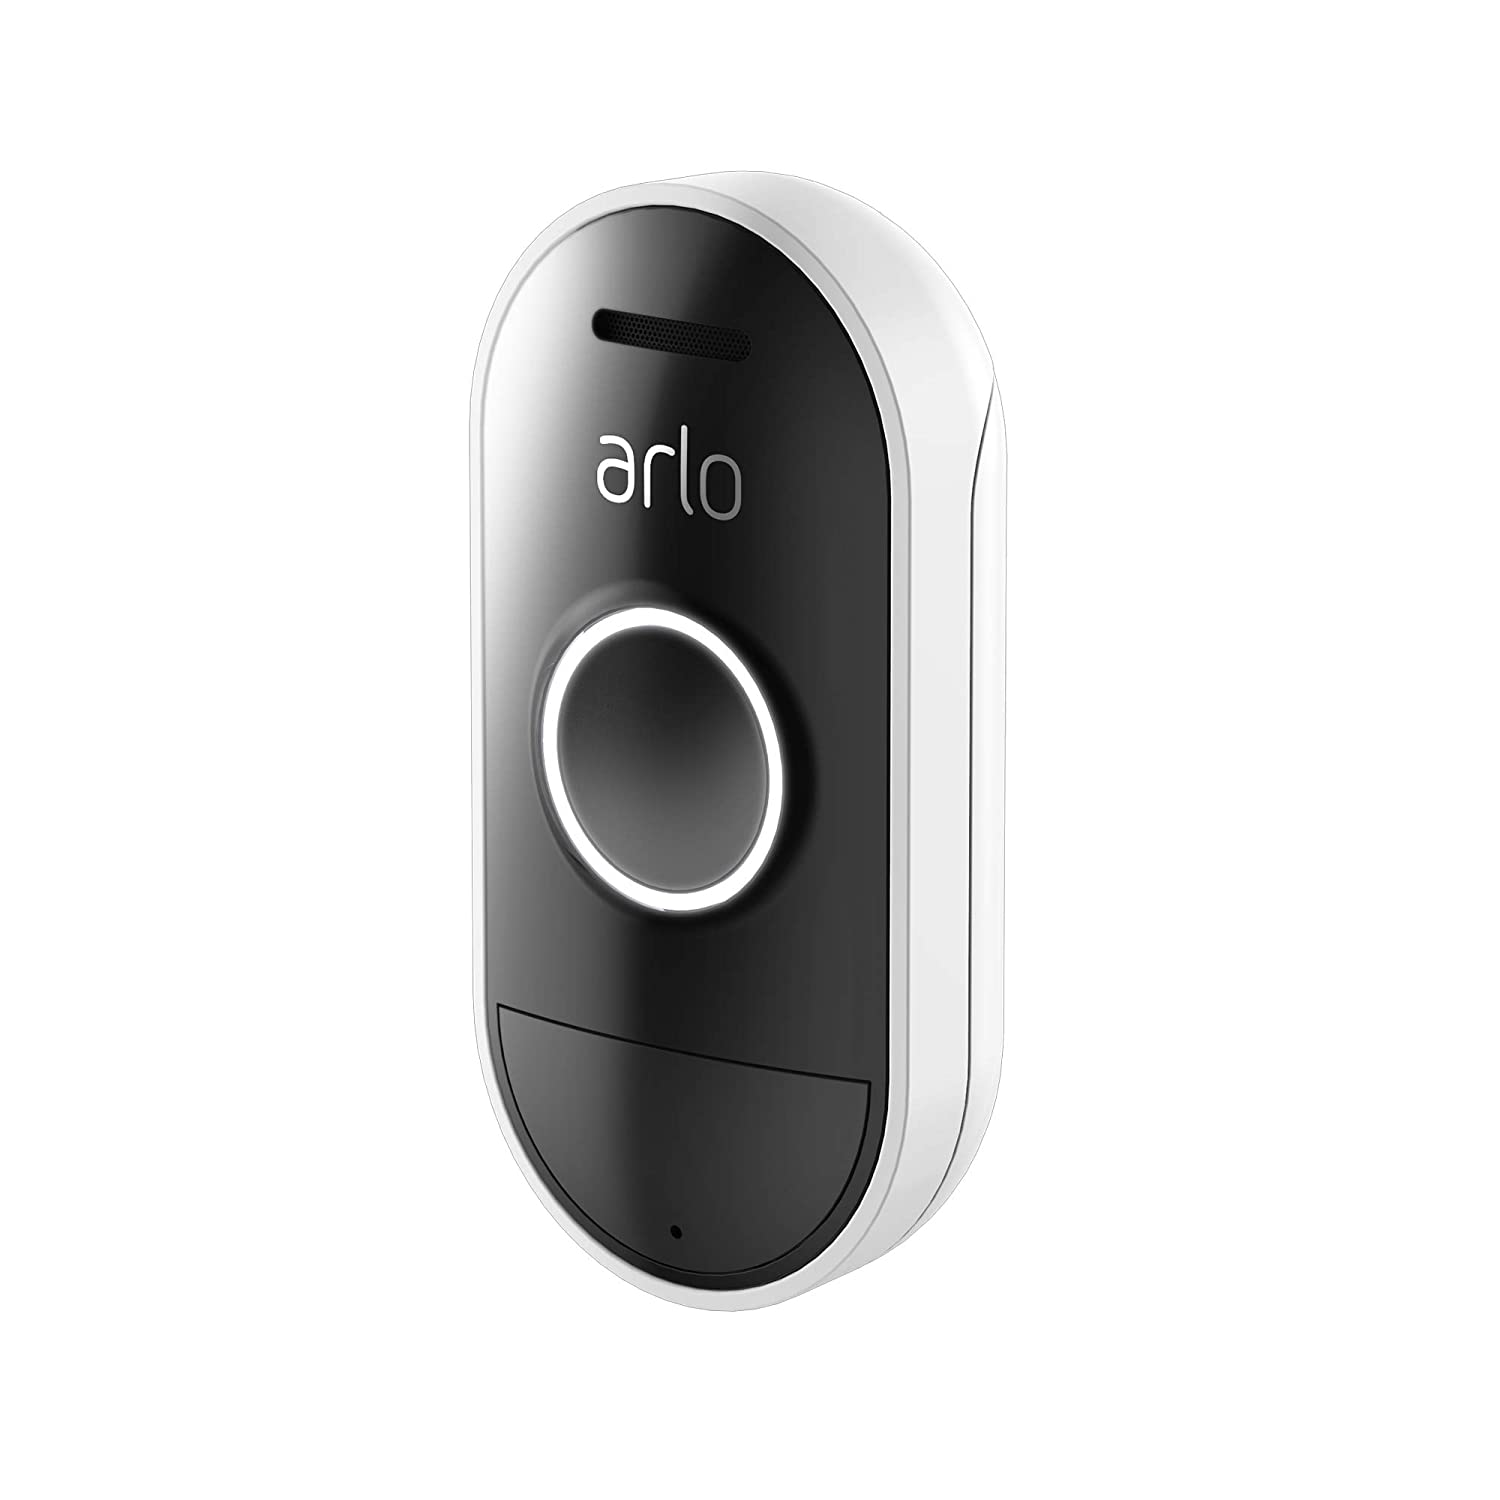 Arlo Audio Doorbell Wire free Smart Home Security Weather resistant Works with Amazon Alexa AAD1001